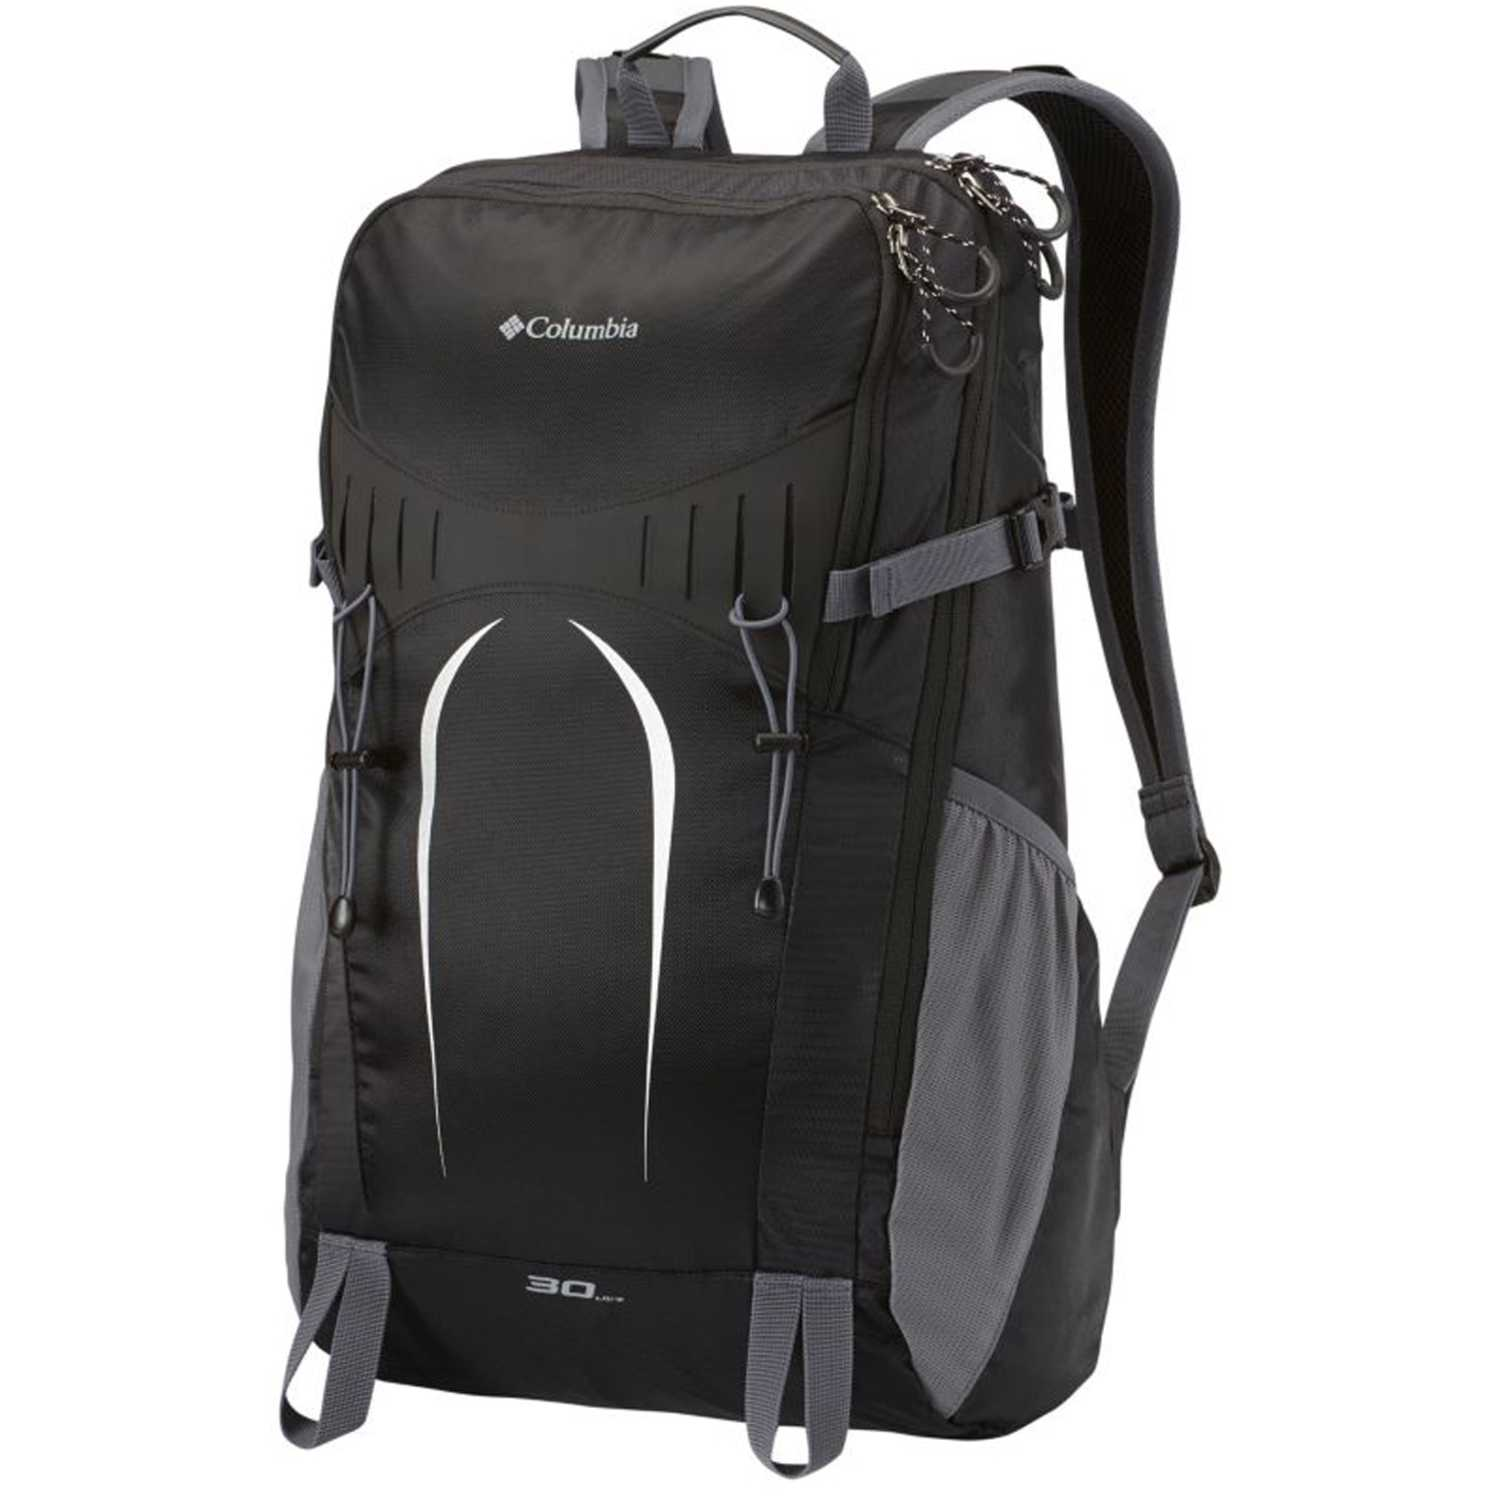 Columbia advent 30l backpack Negro /gris senderismo Daypacks